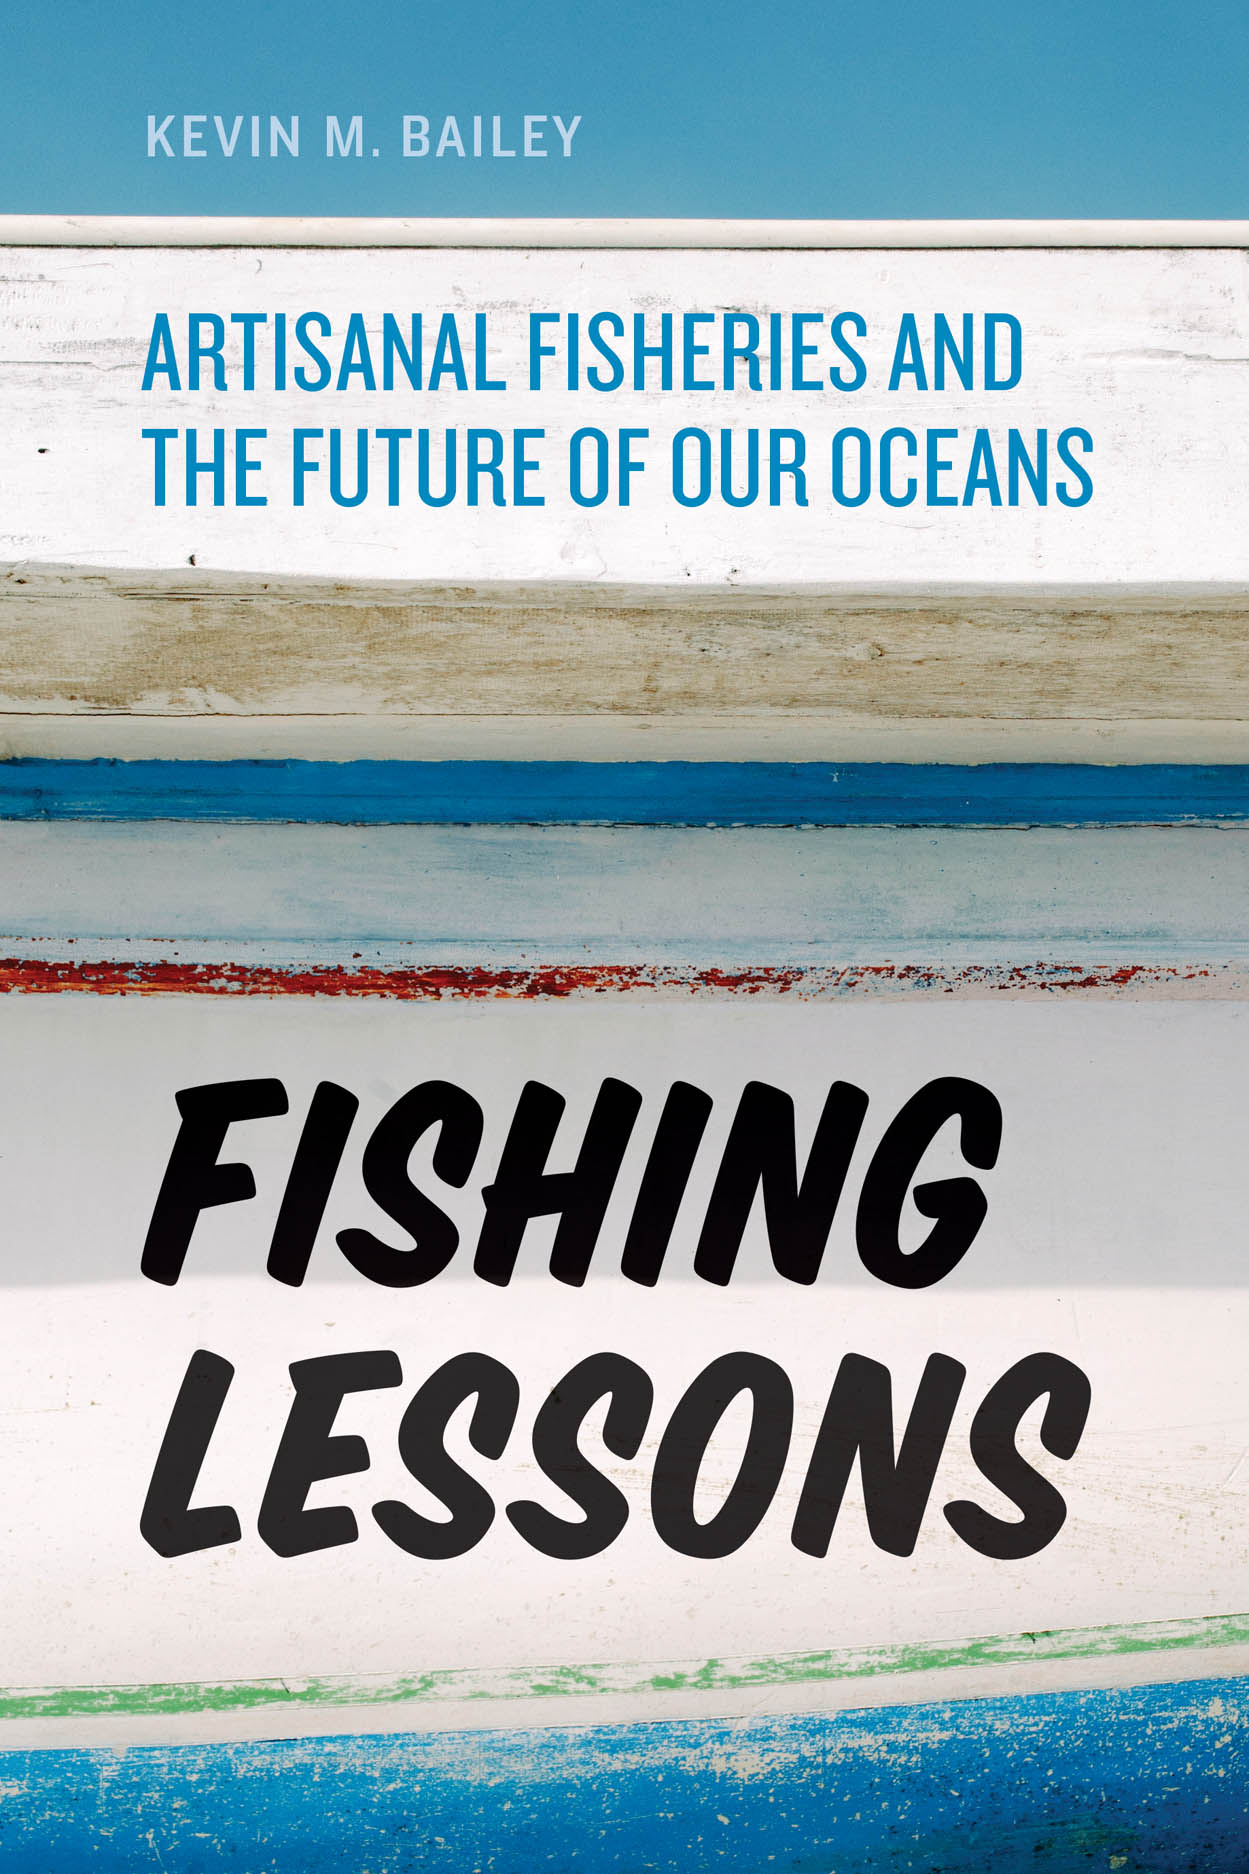 Fishing Lessons: Artisanal Fisheries and the Future of Our Oceans